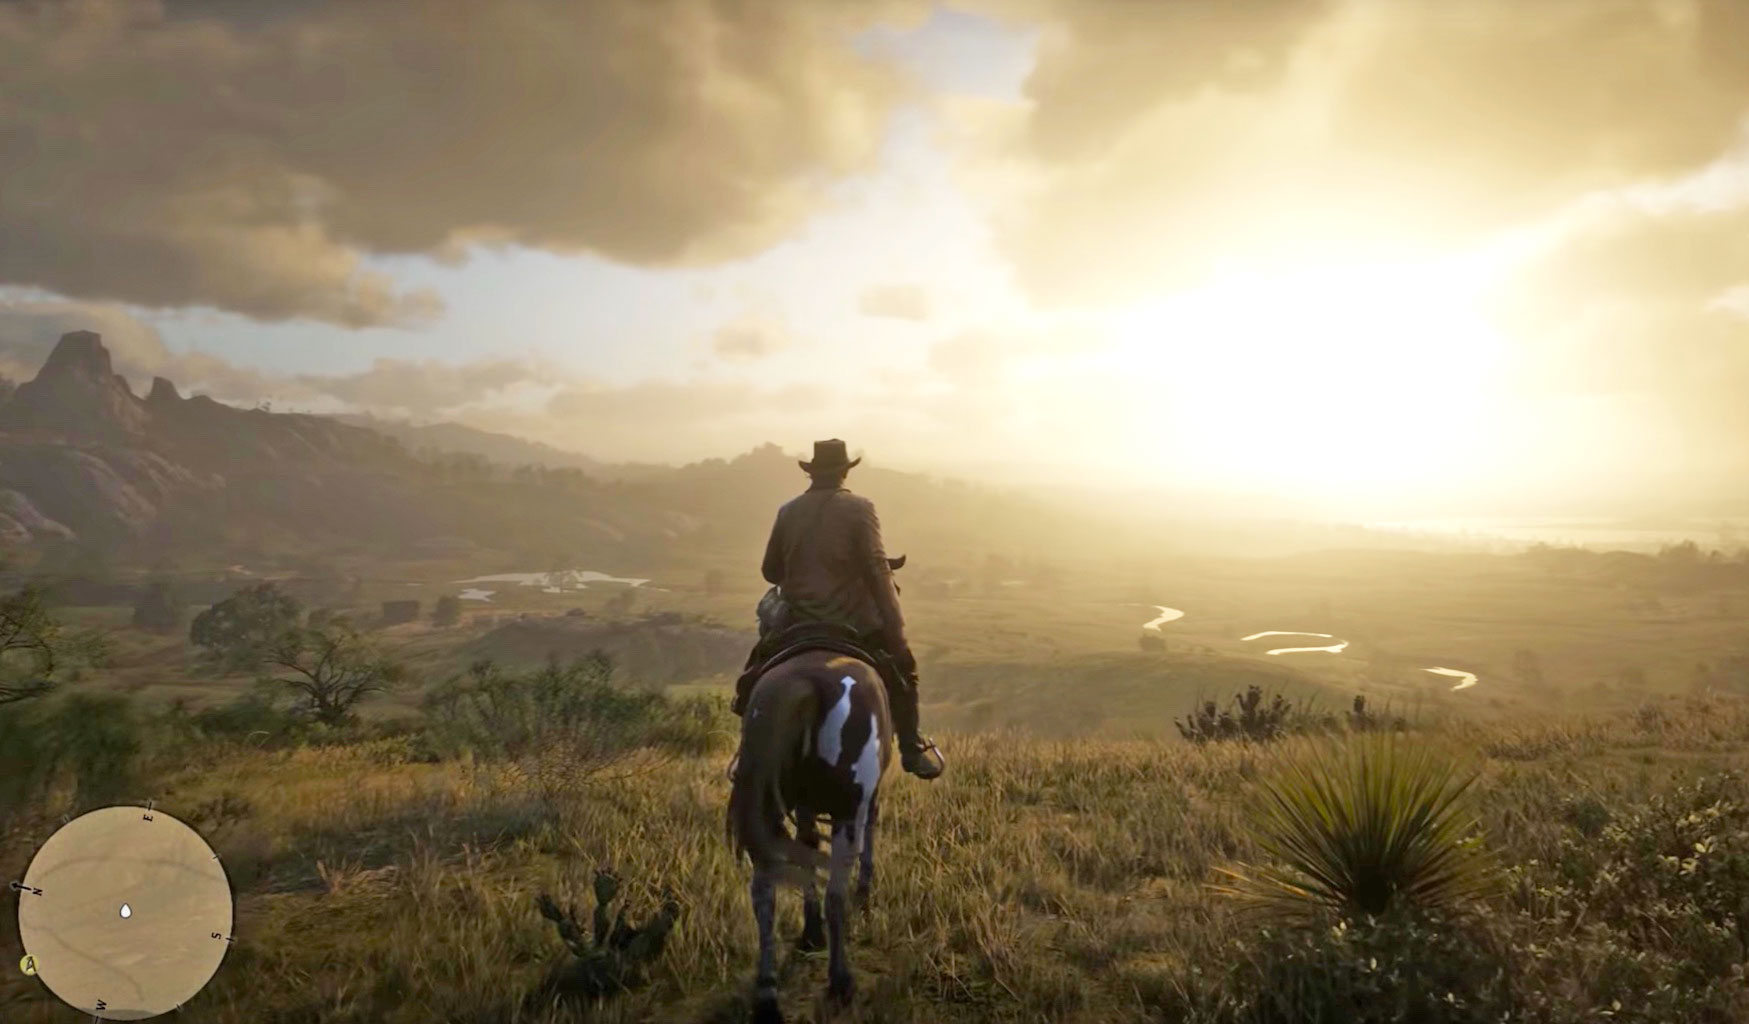 'Red Dead Redemption 2' trailer shows off a more ambitious sequel